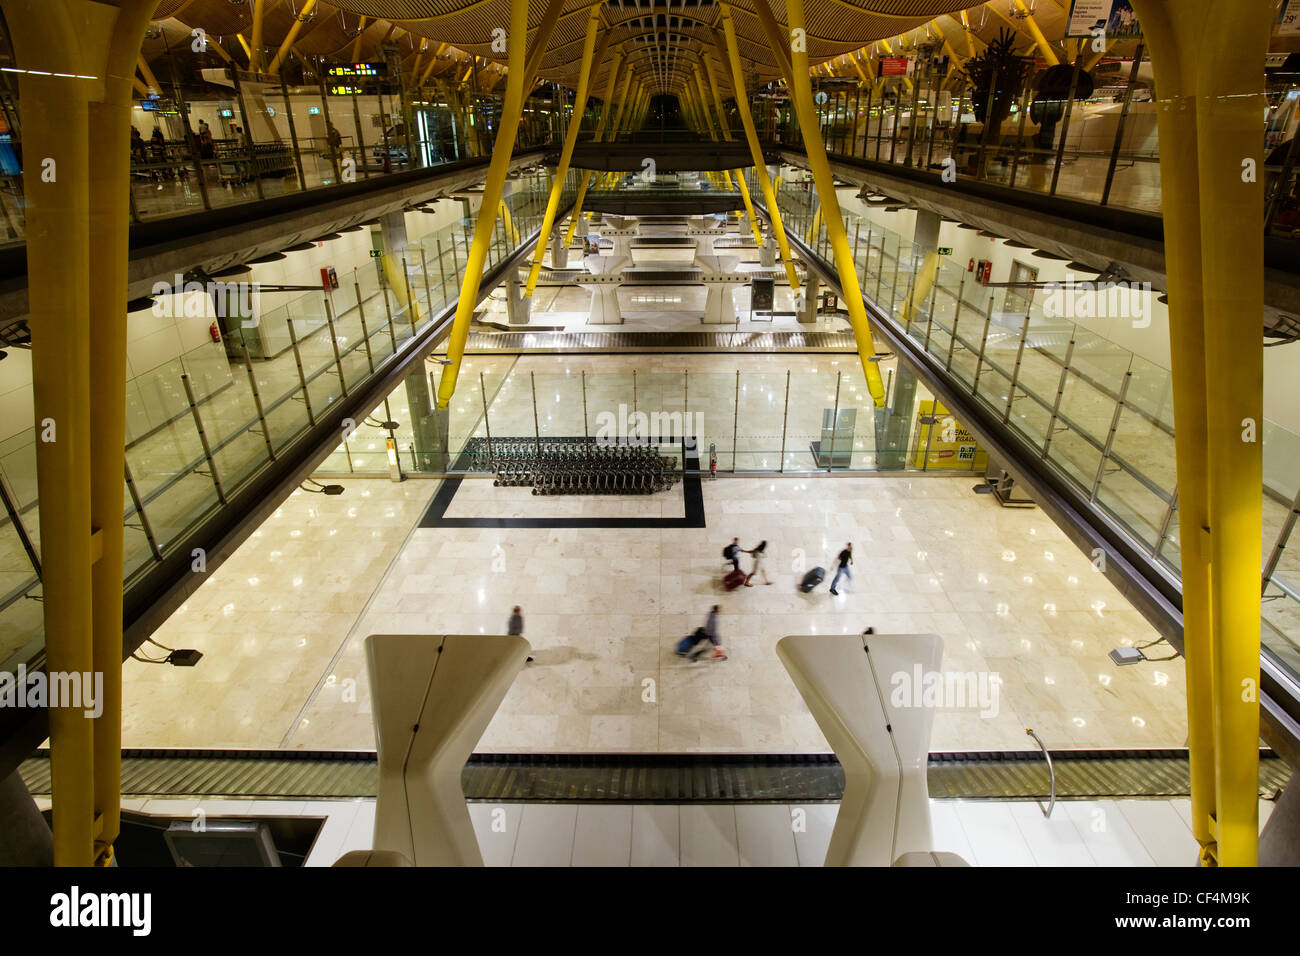 T4 Arrivals Terminal, Madrid Barajas International Airport, Spain - Stock Image